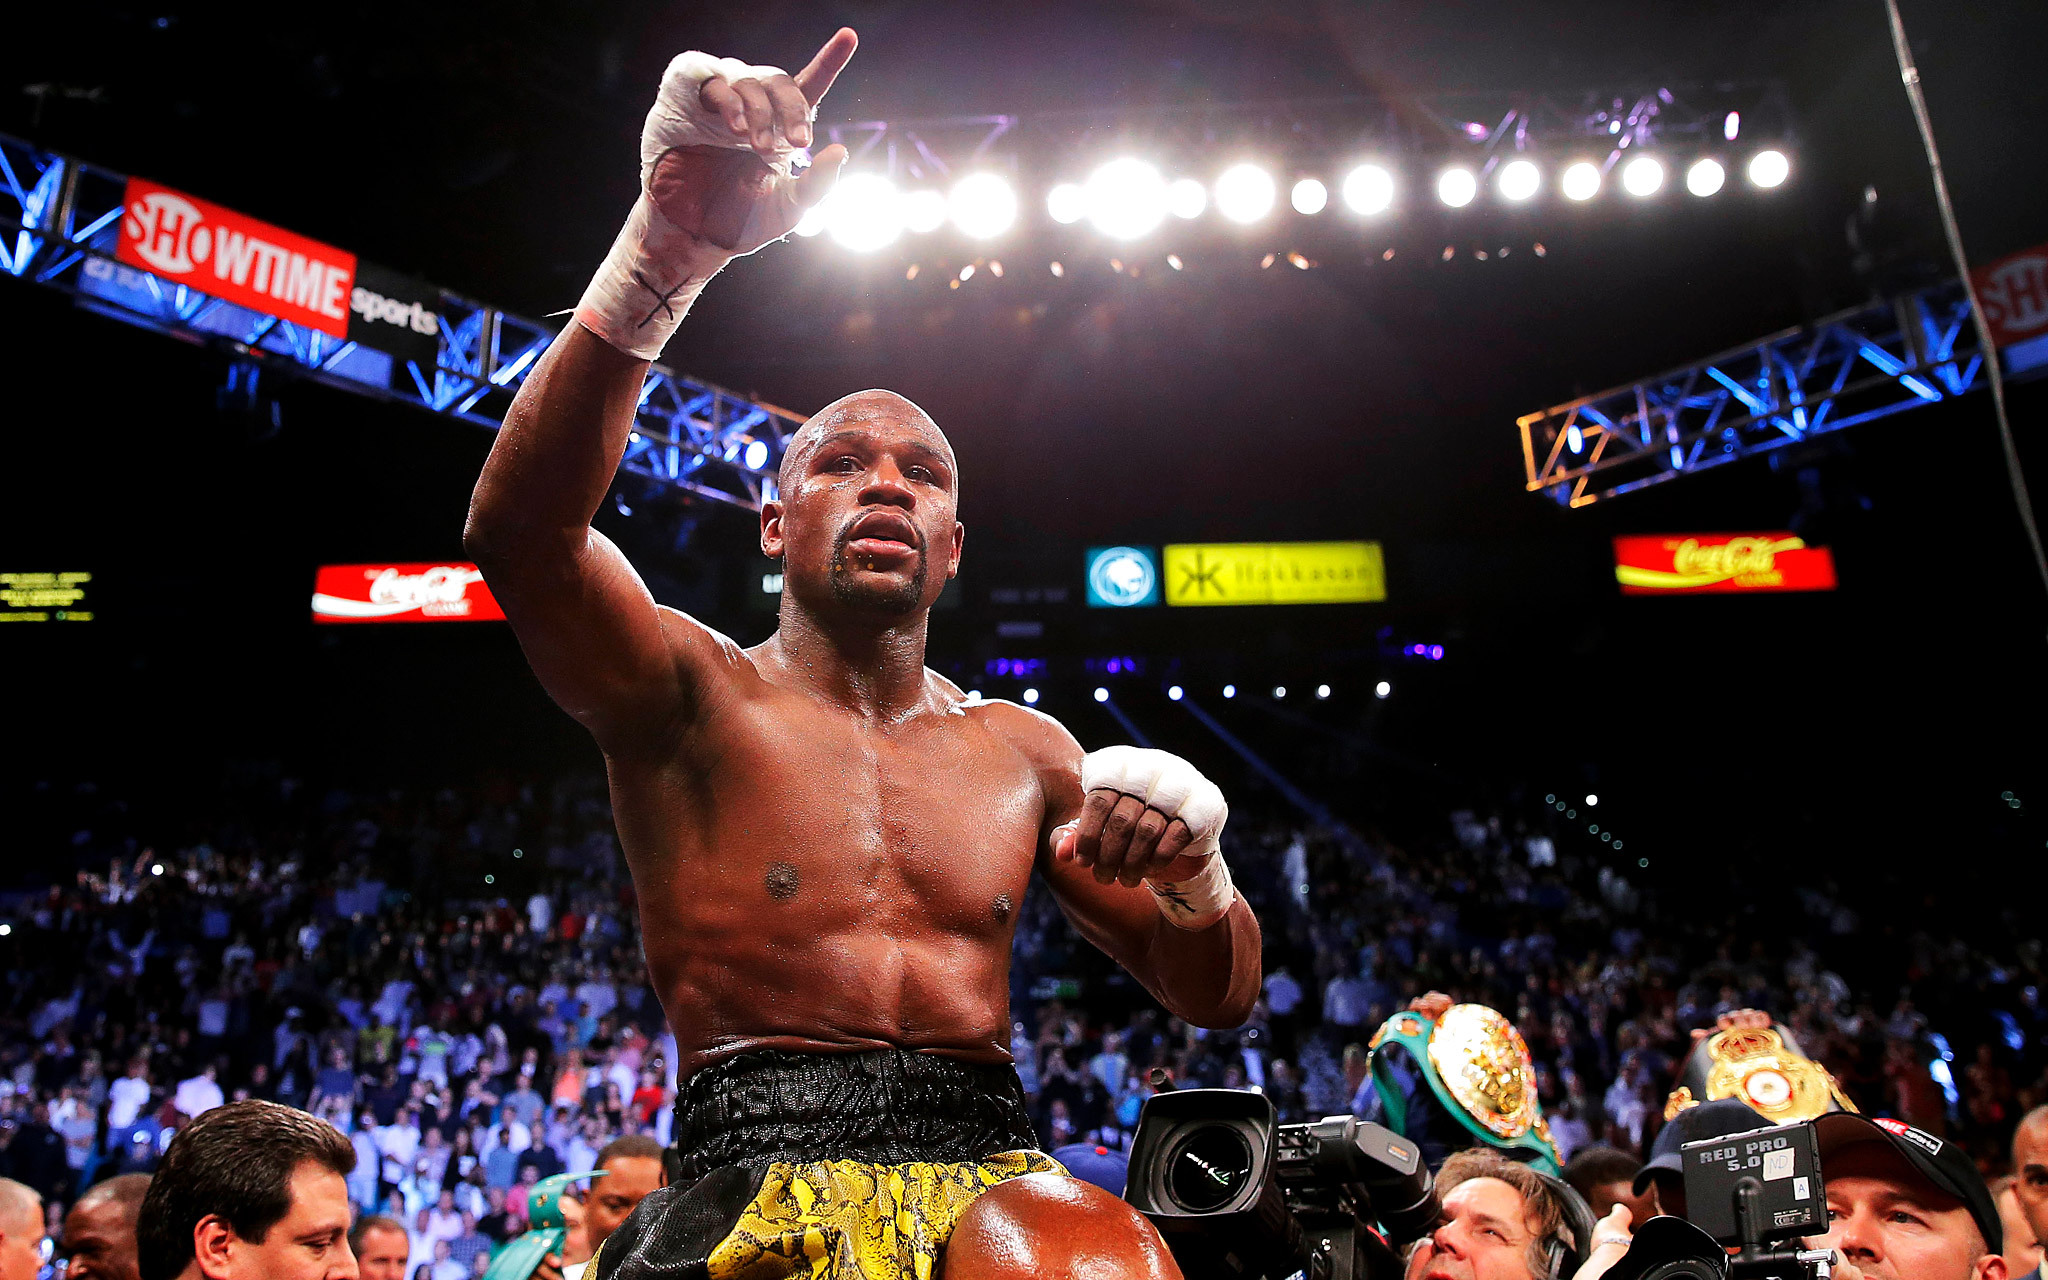 Floyd Mayweather Jr furthermore Mgm Grand Boxing furthermore Boxing Gods Hall Of Fame as well Round Card Girl besides Withfriendship   user kethan juliocesarchavez. on oscar de la hoya vs sugar ray leonard